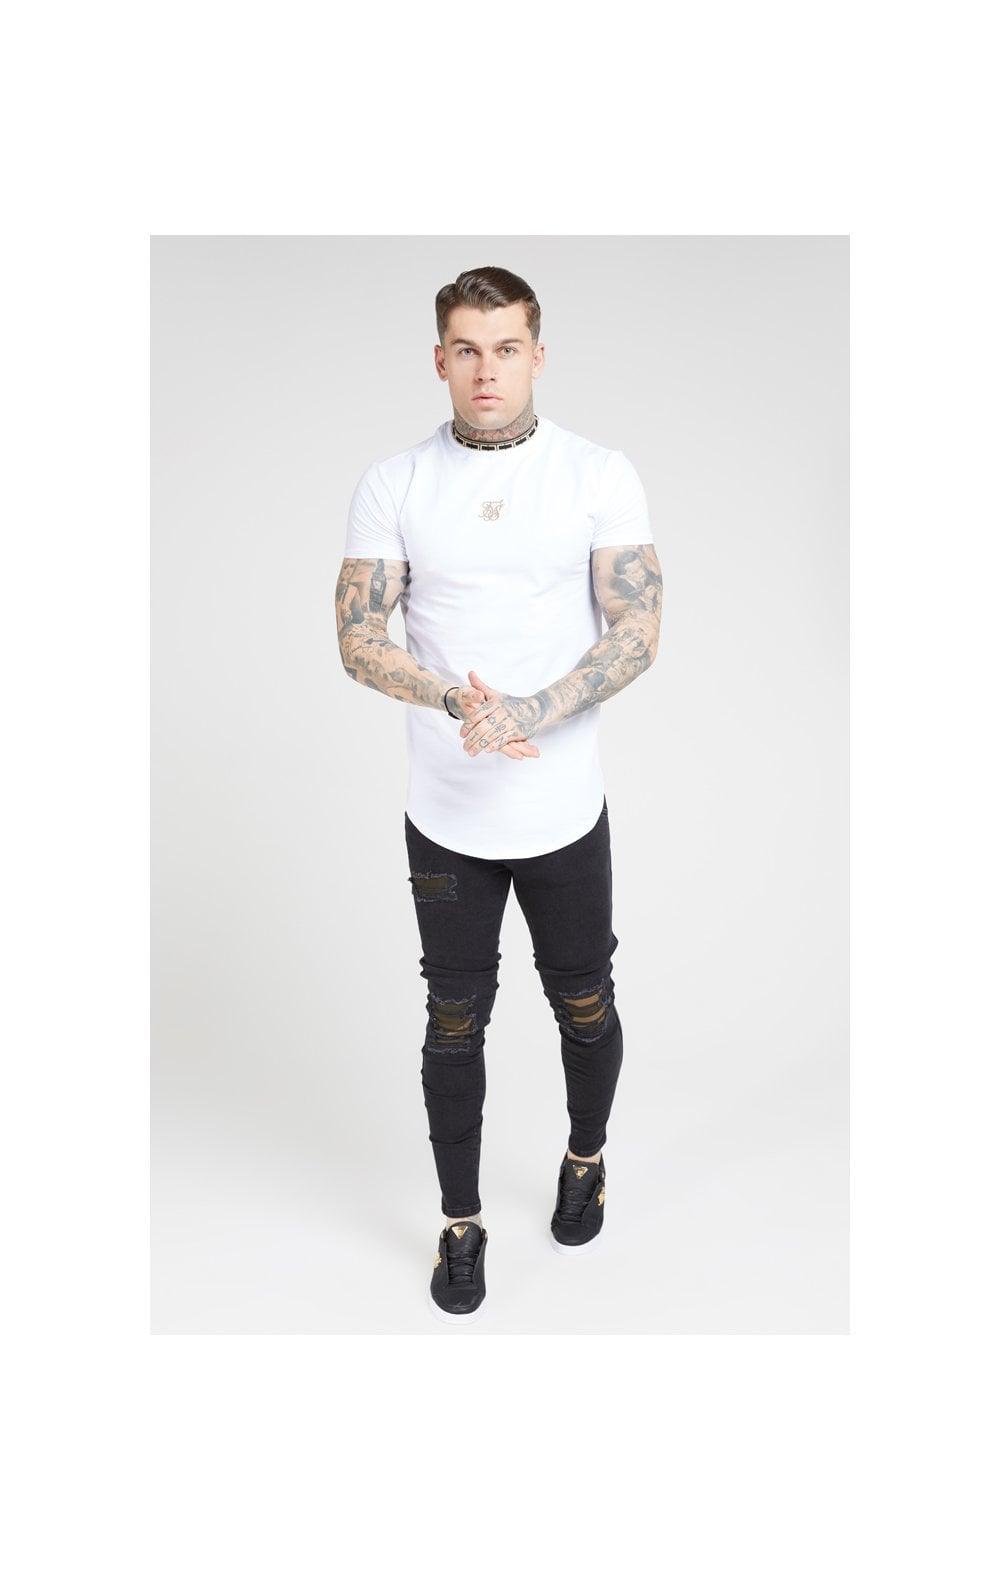 SikSilk Tape Collar Gym Tee - White & Gold (3)